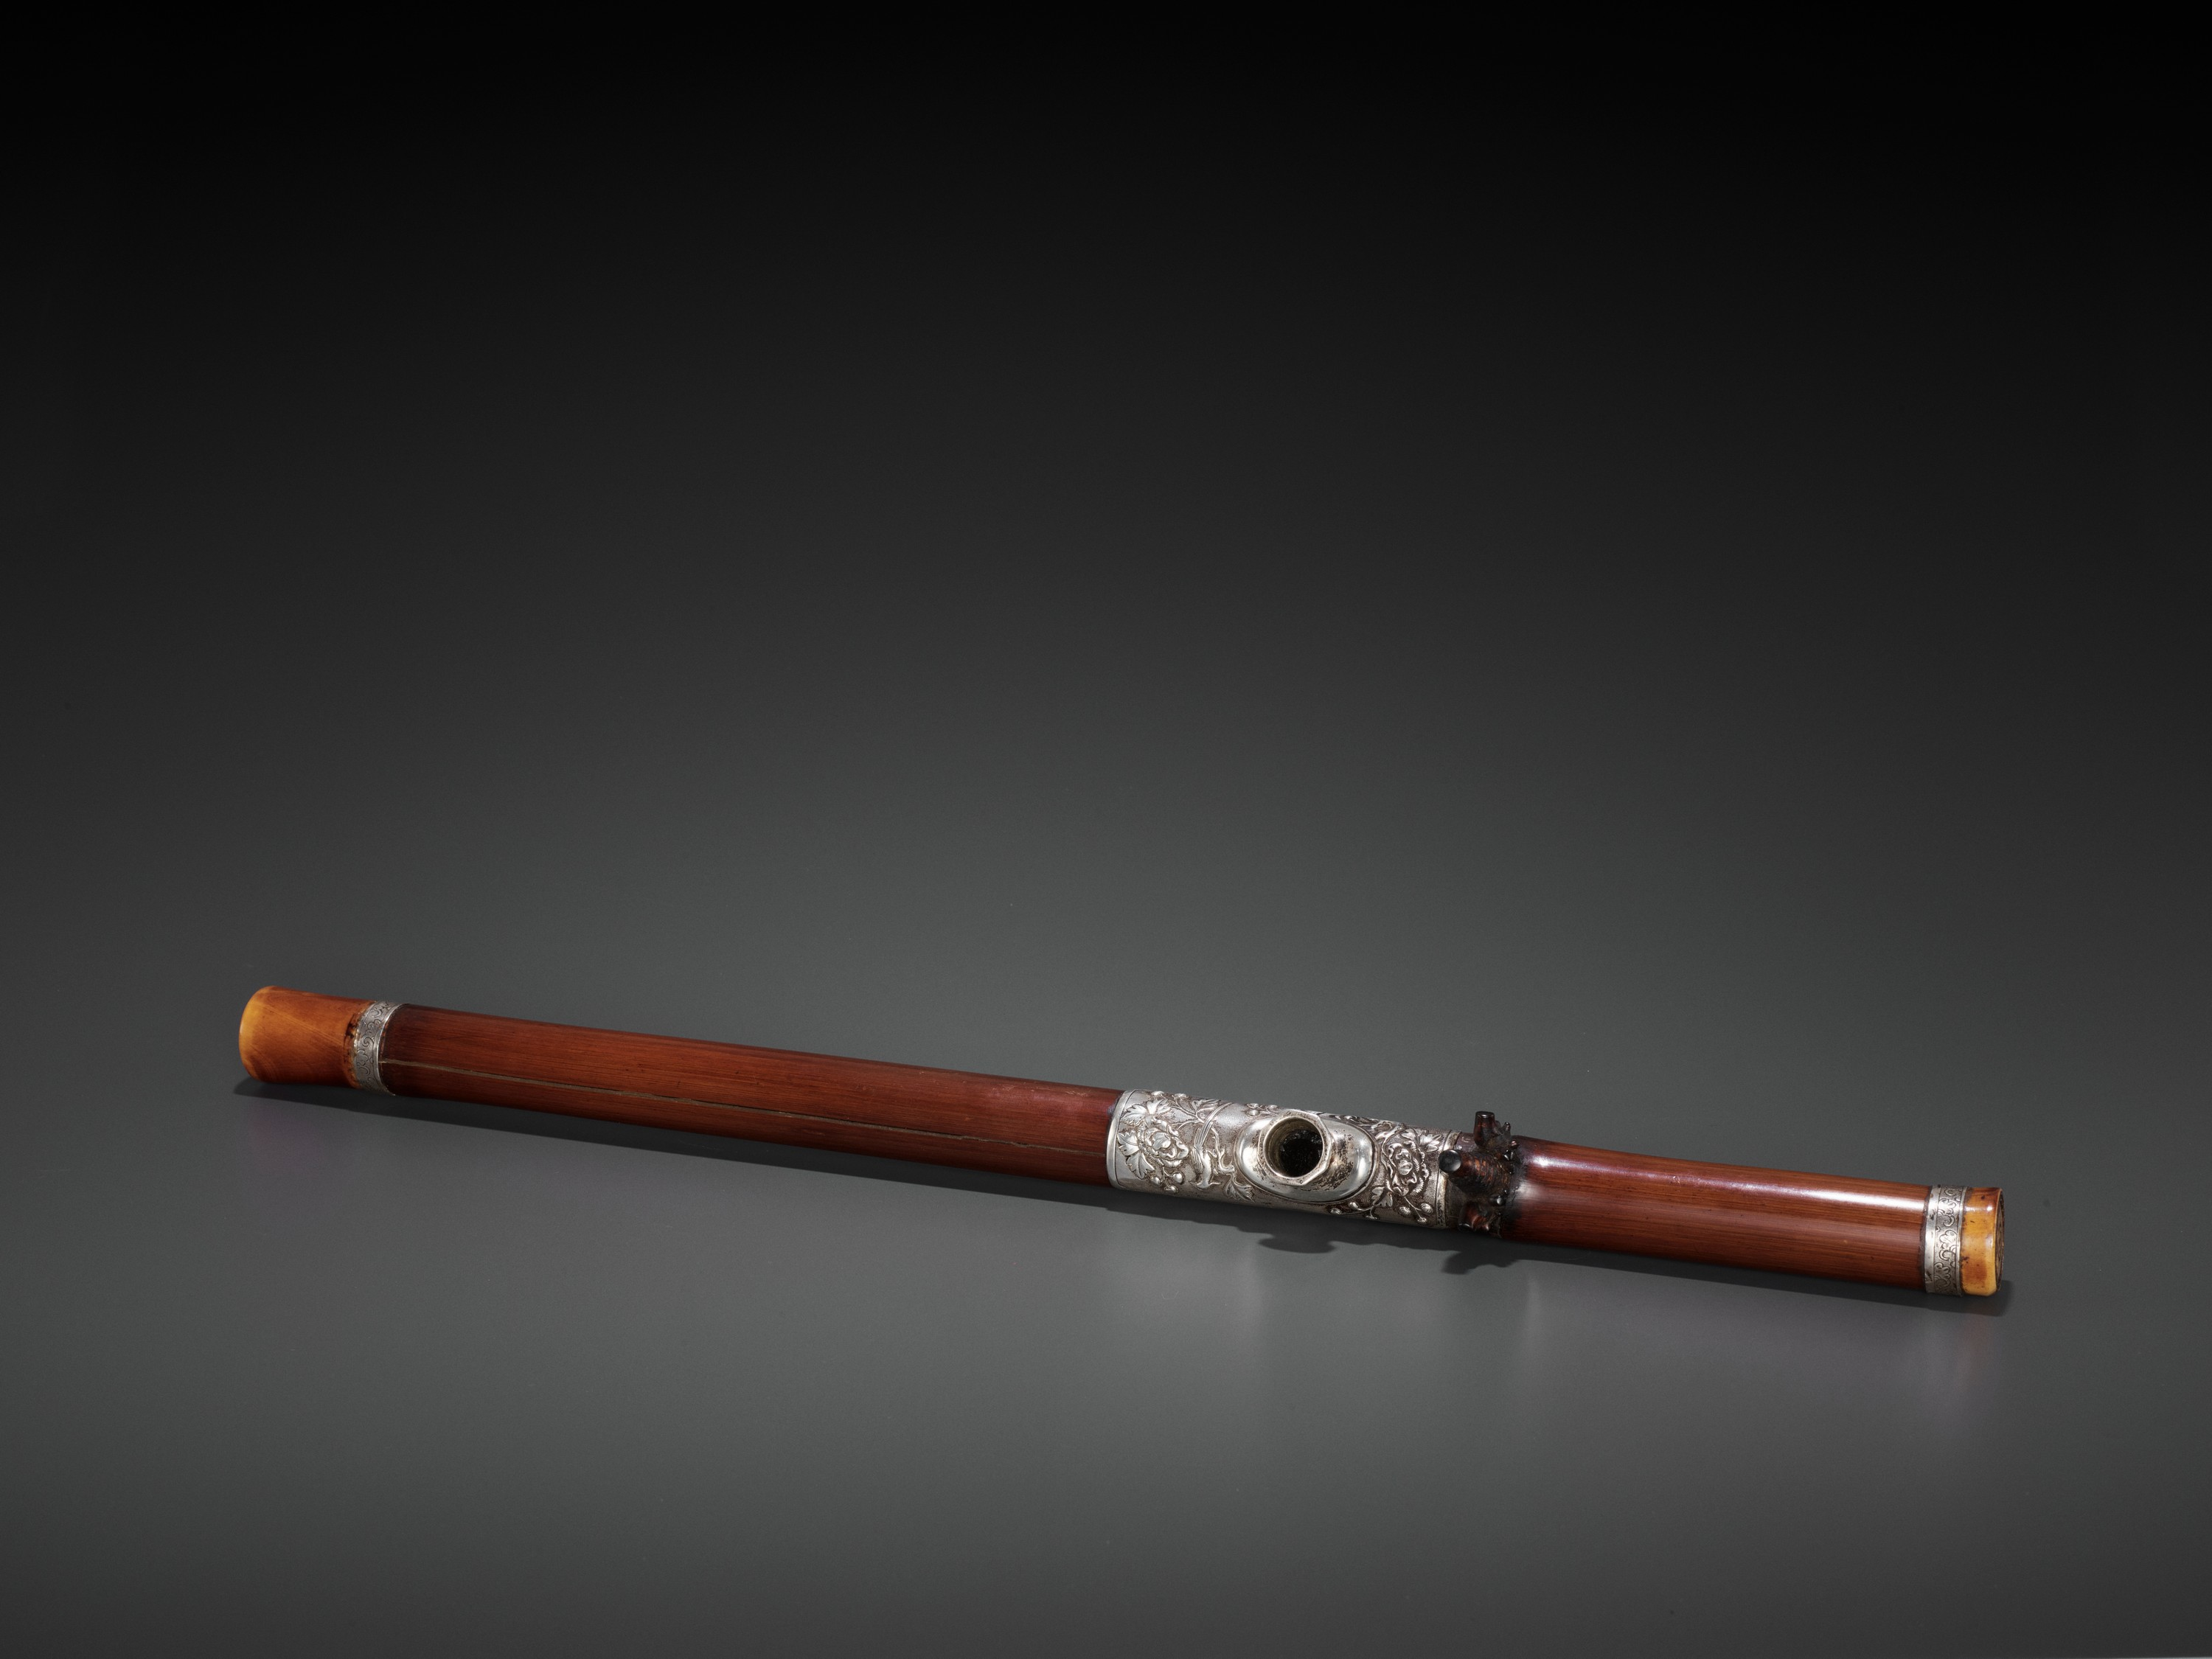 A BAMBOO OPIUM PIPE WITH IVORY, SILVER AND YIXING CERAMIC FITTINGS, LATE QING TO REPUBLIC - Image 4 of 9